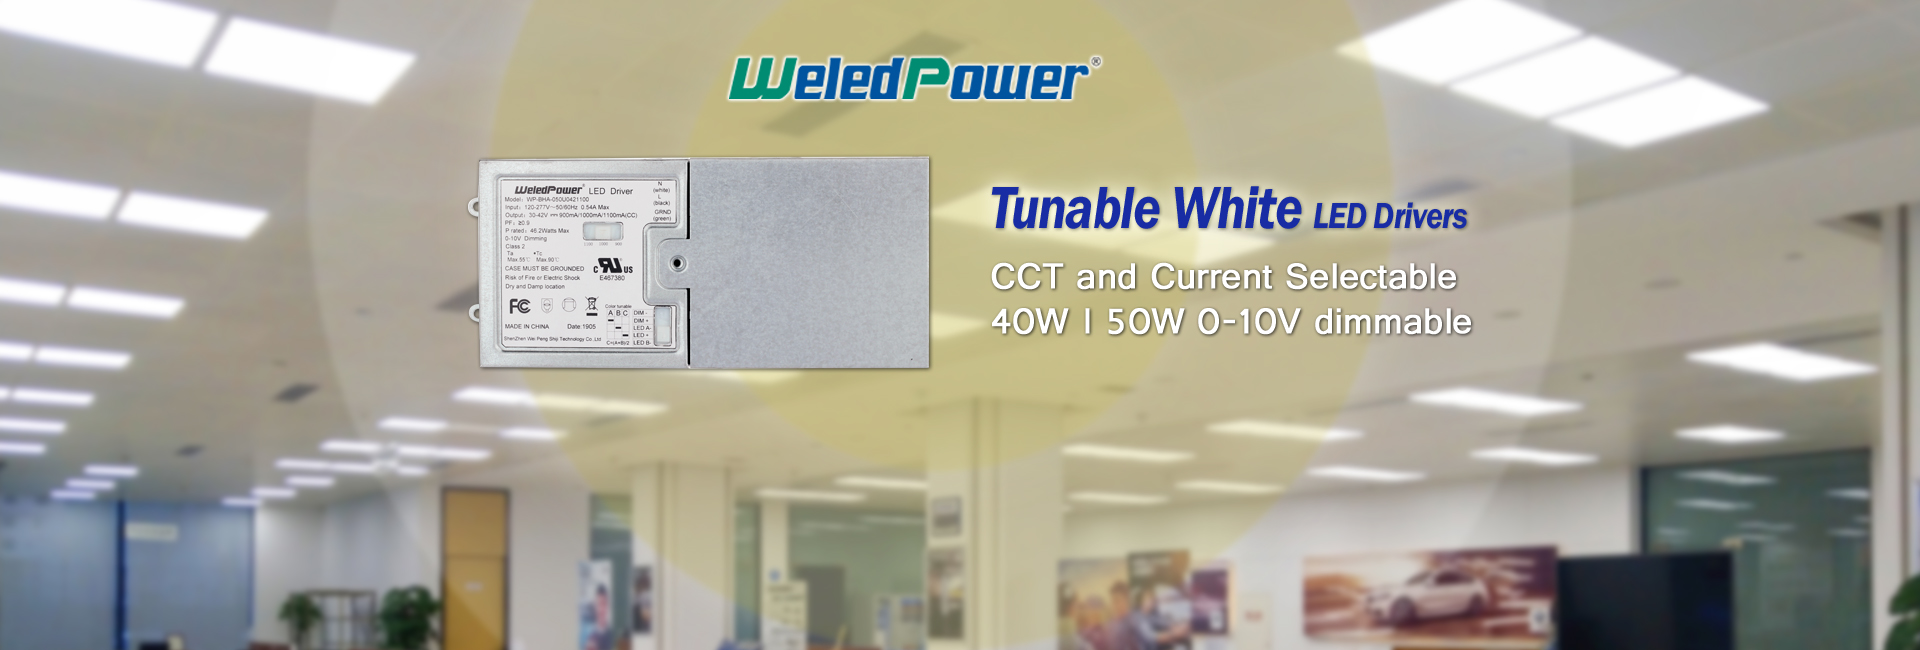 tunable white led drivers